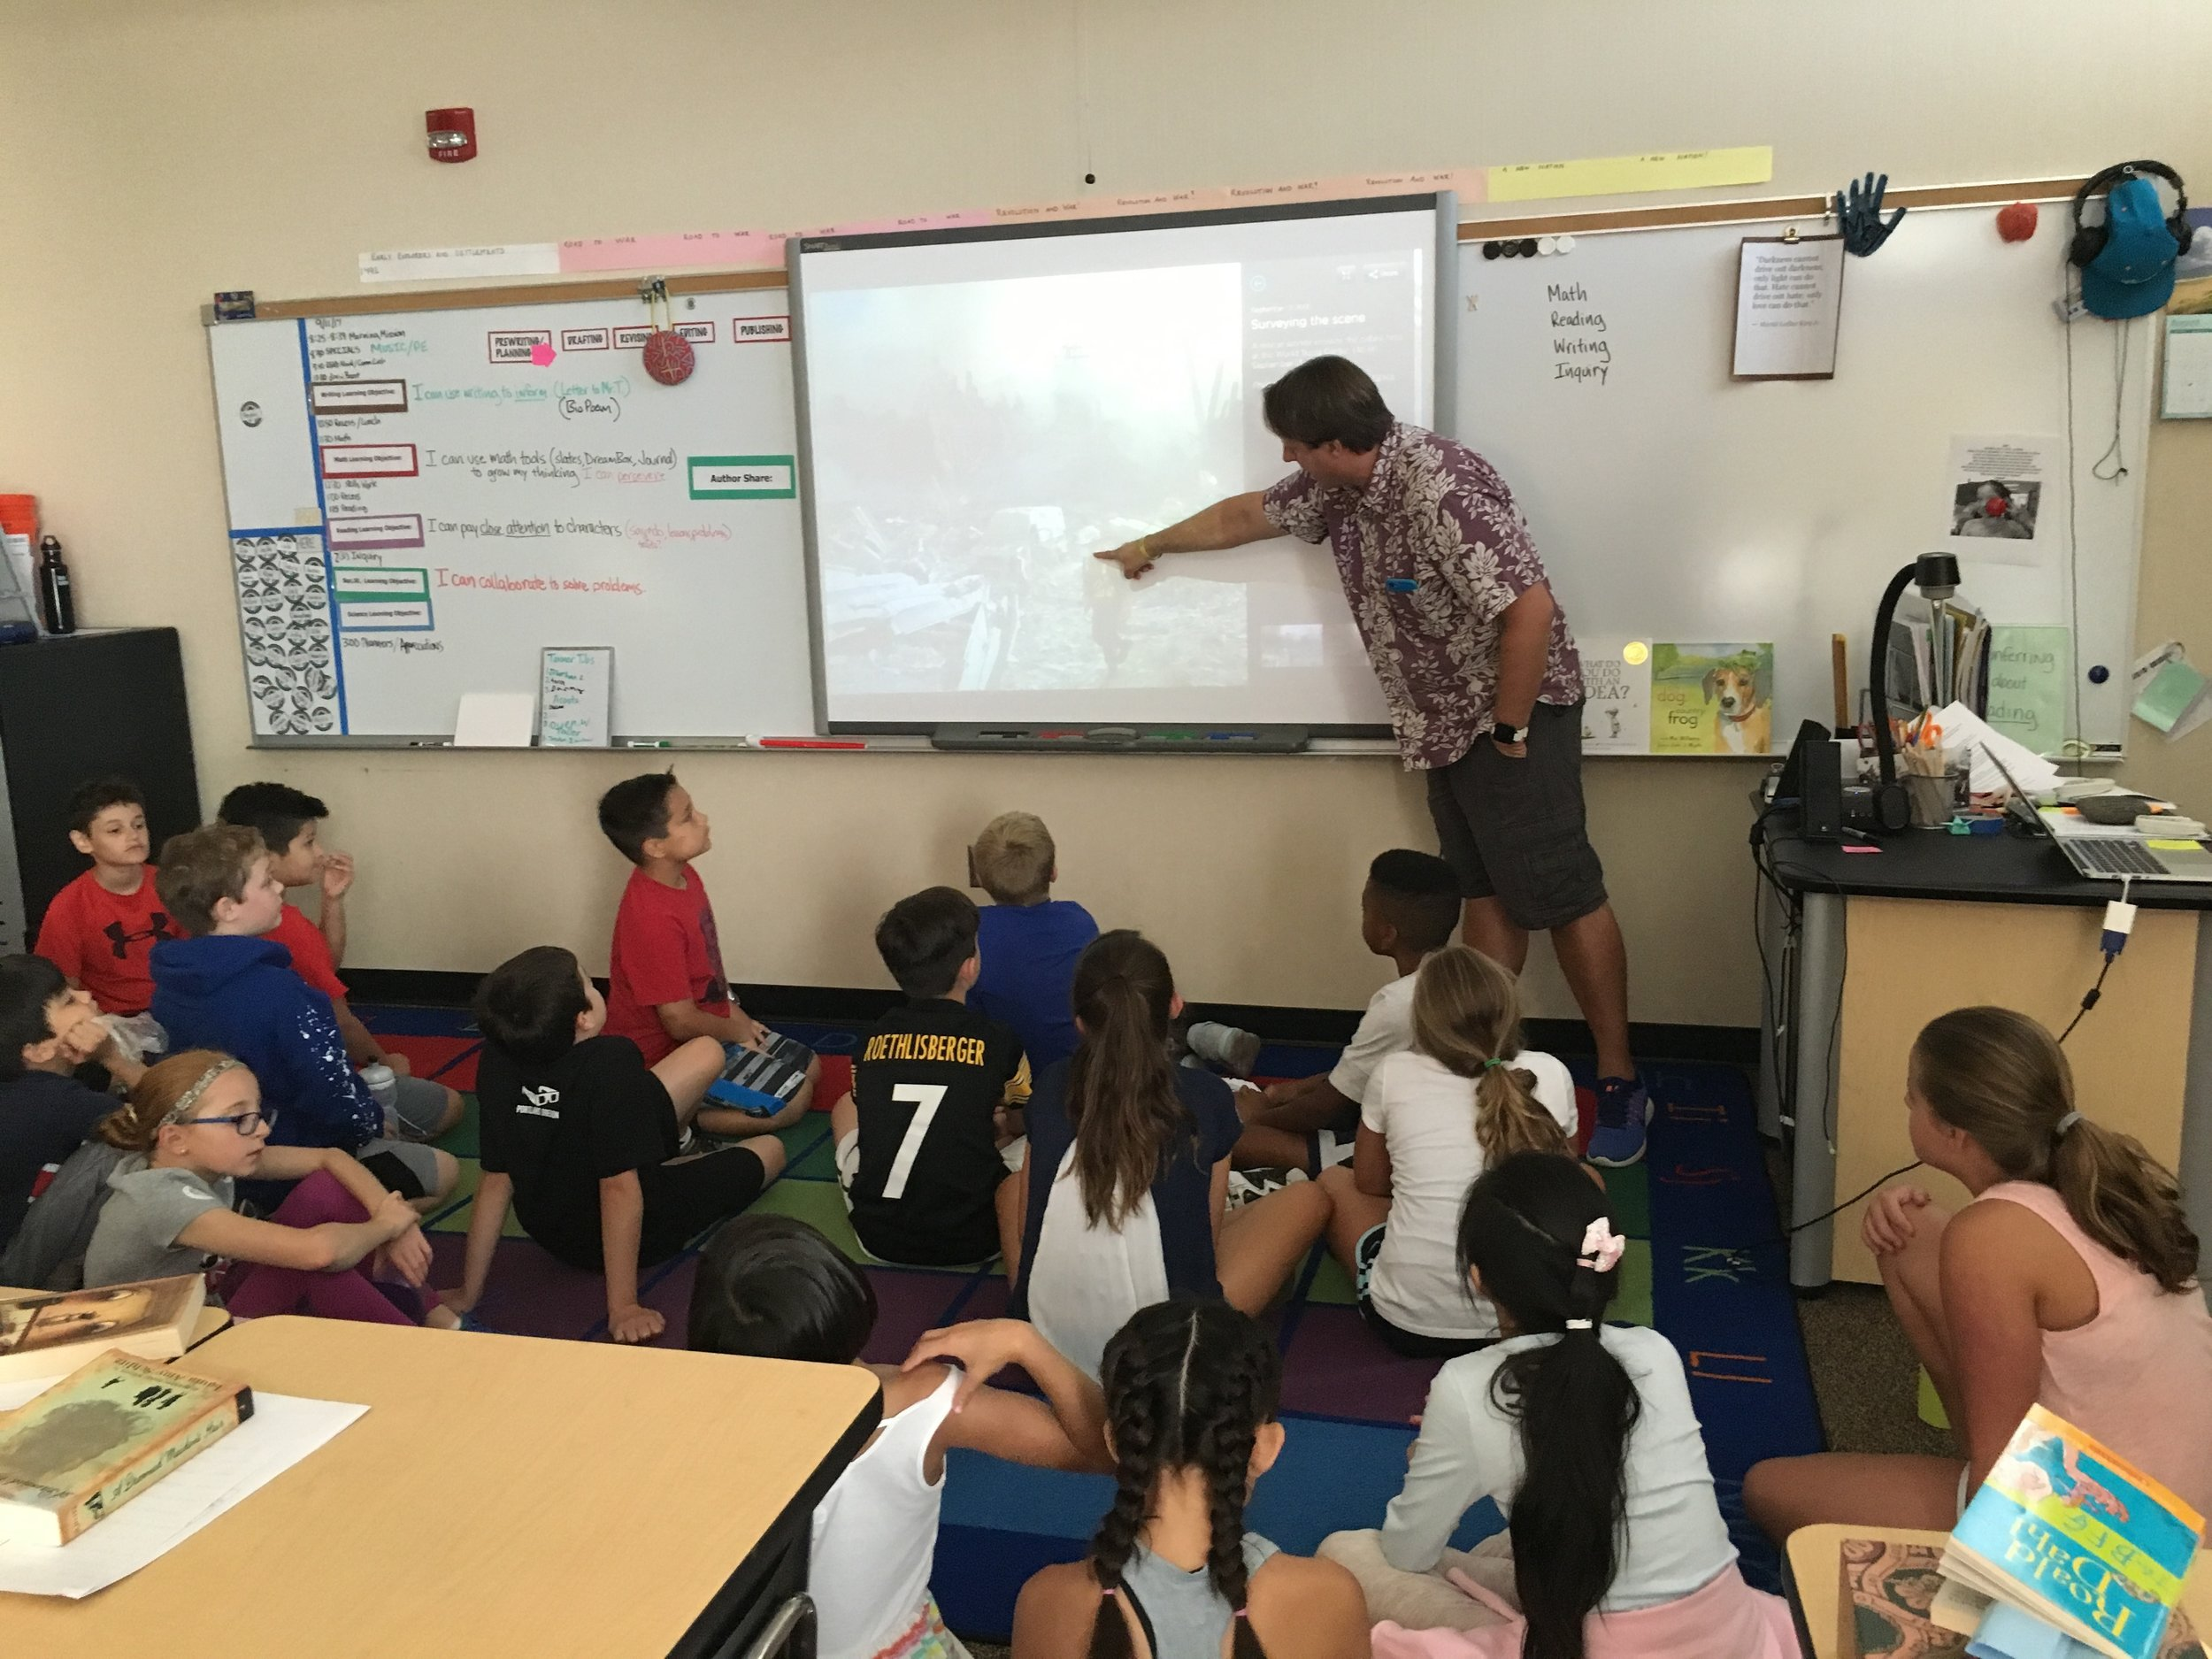 Fifth grade students in Mr. Traller's classroom discuss first responders and 9/11.  Later students expressed their feelings through an art project.